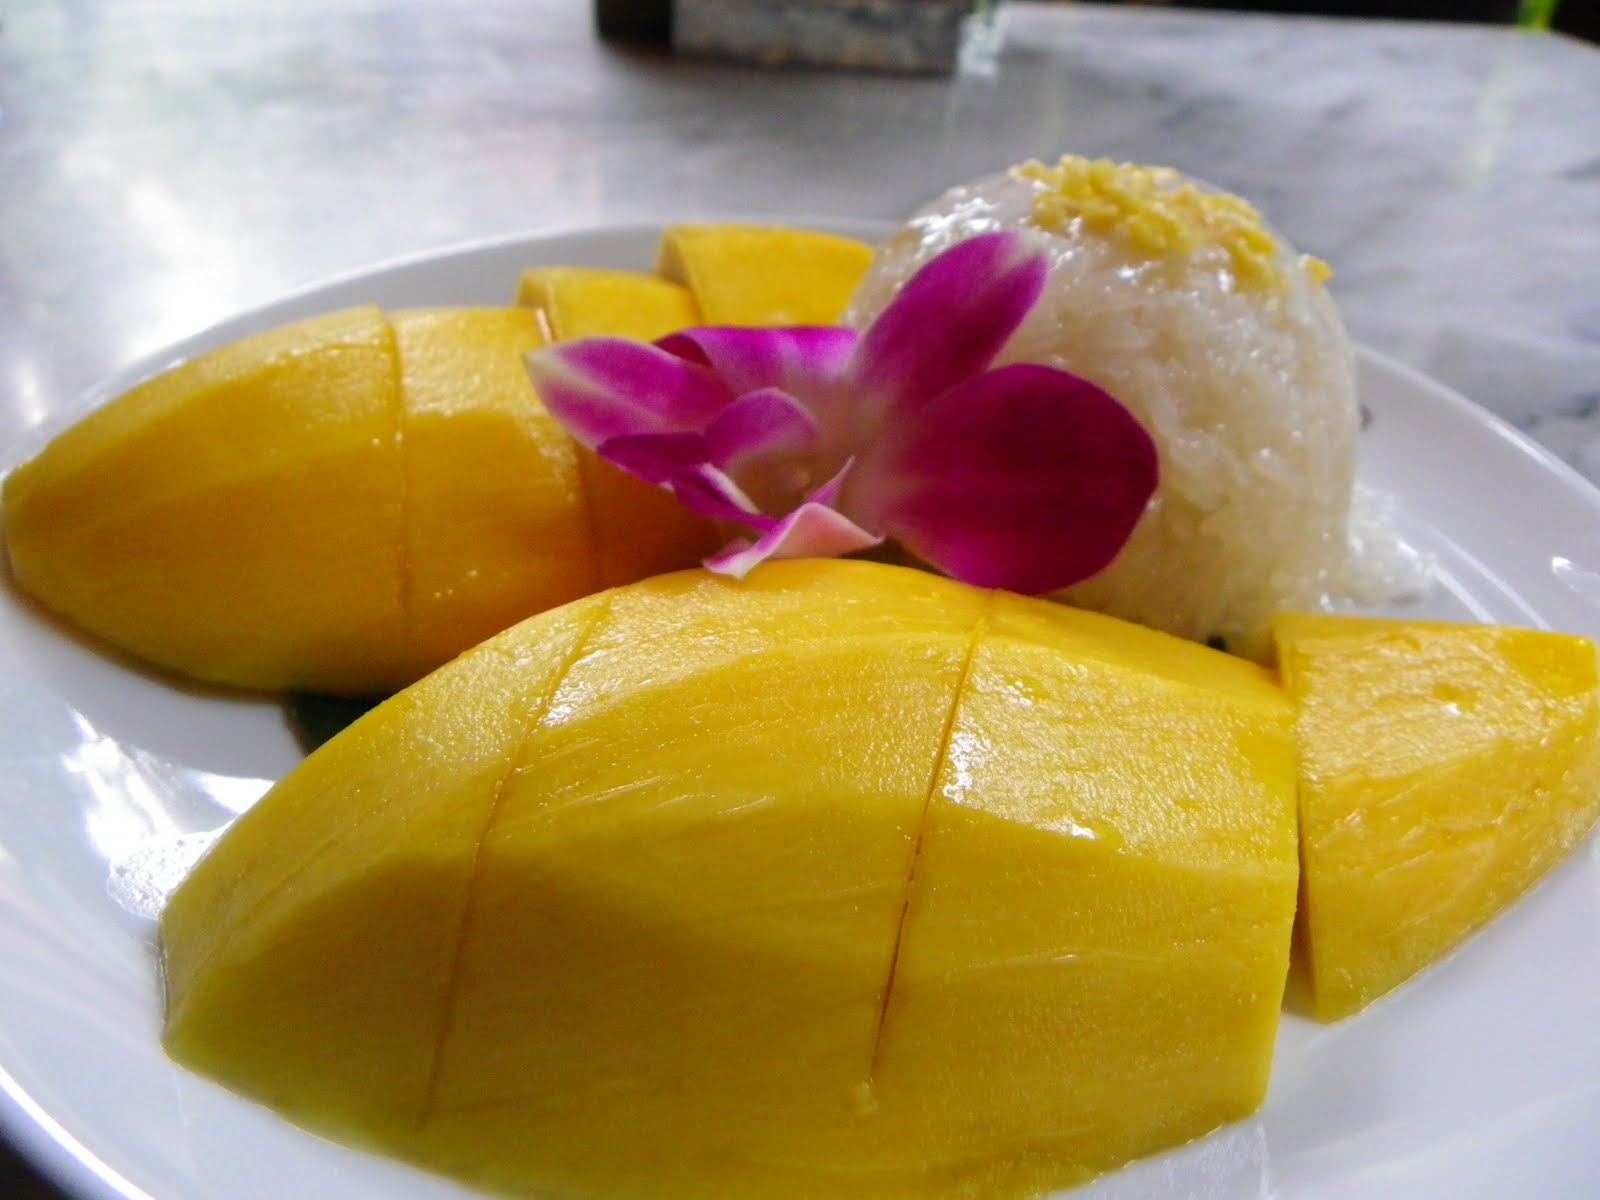 10. Mango sticky rice pudding (Thailand)